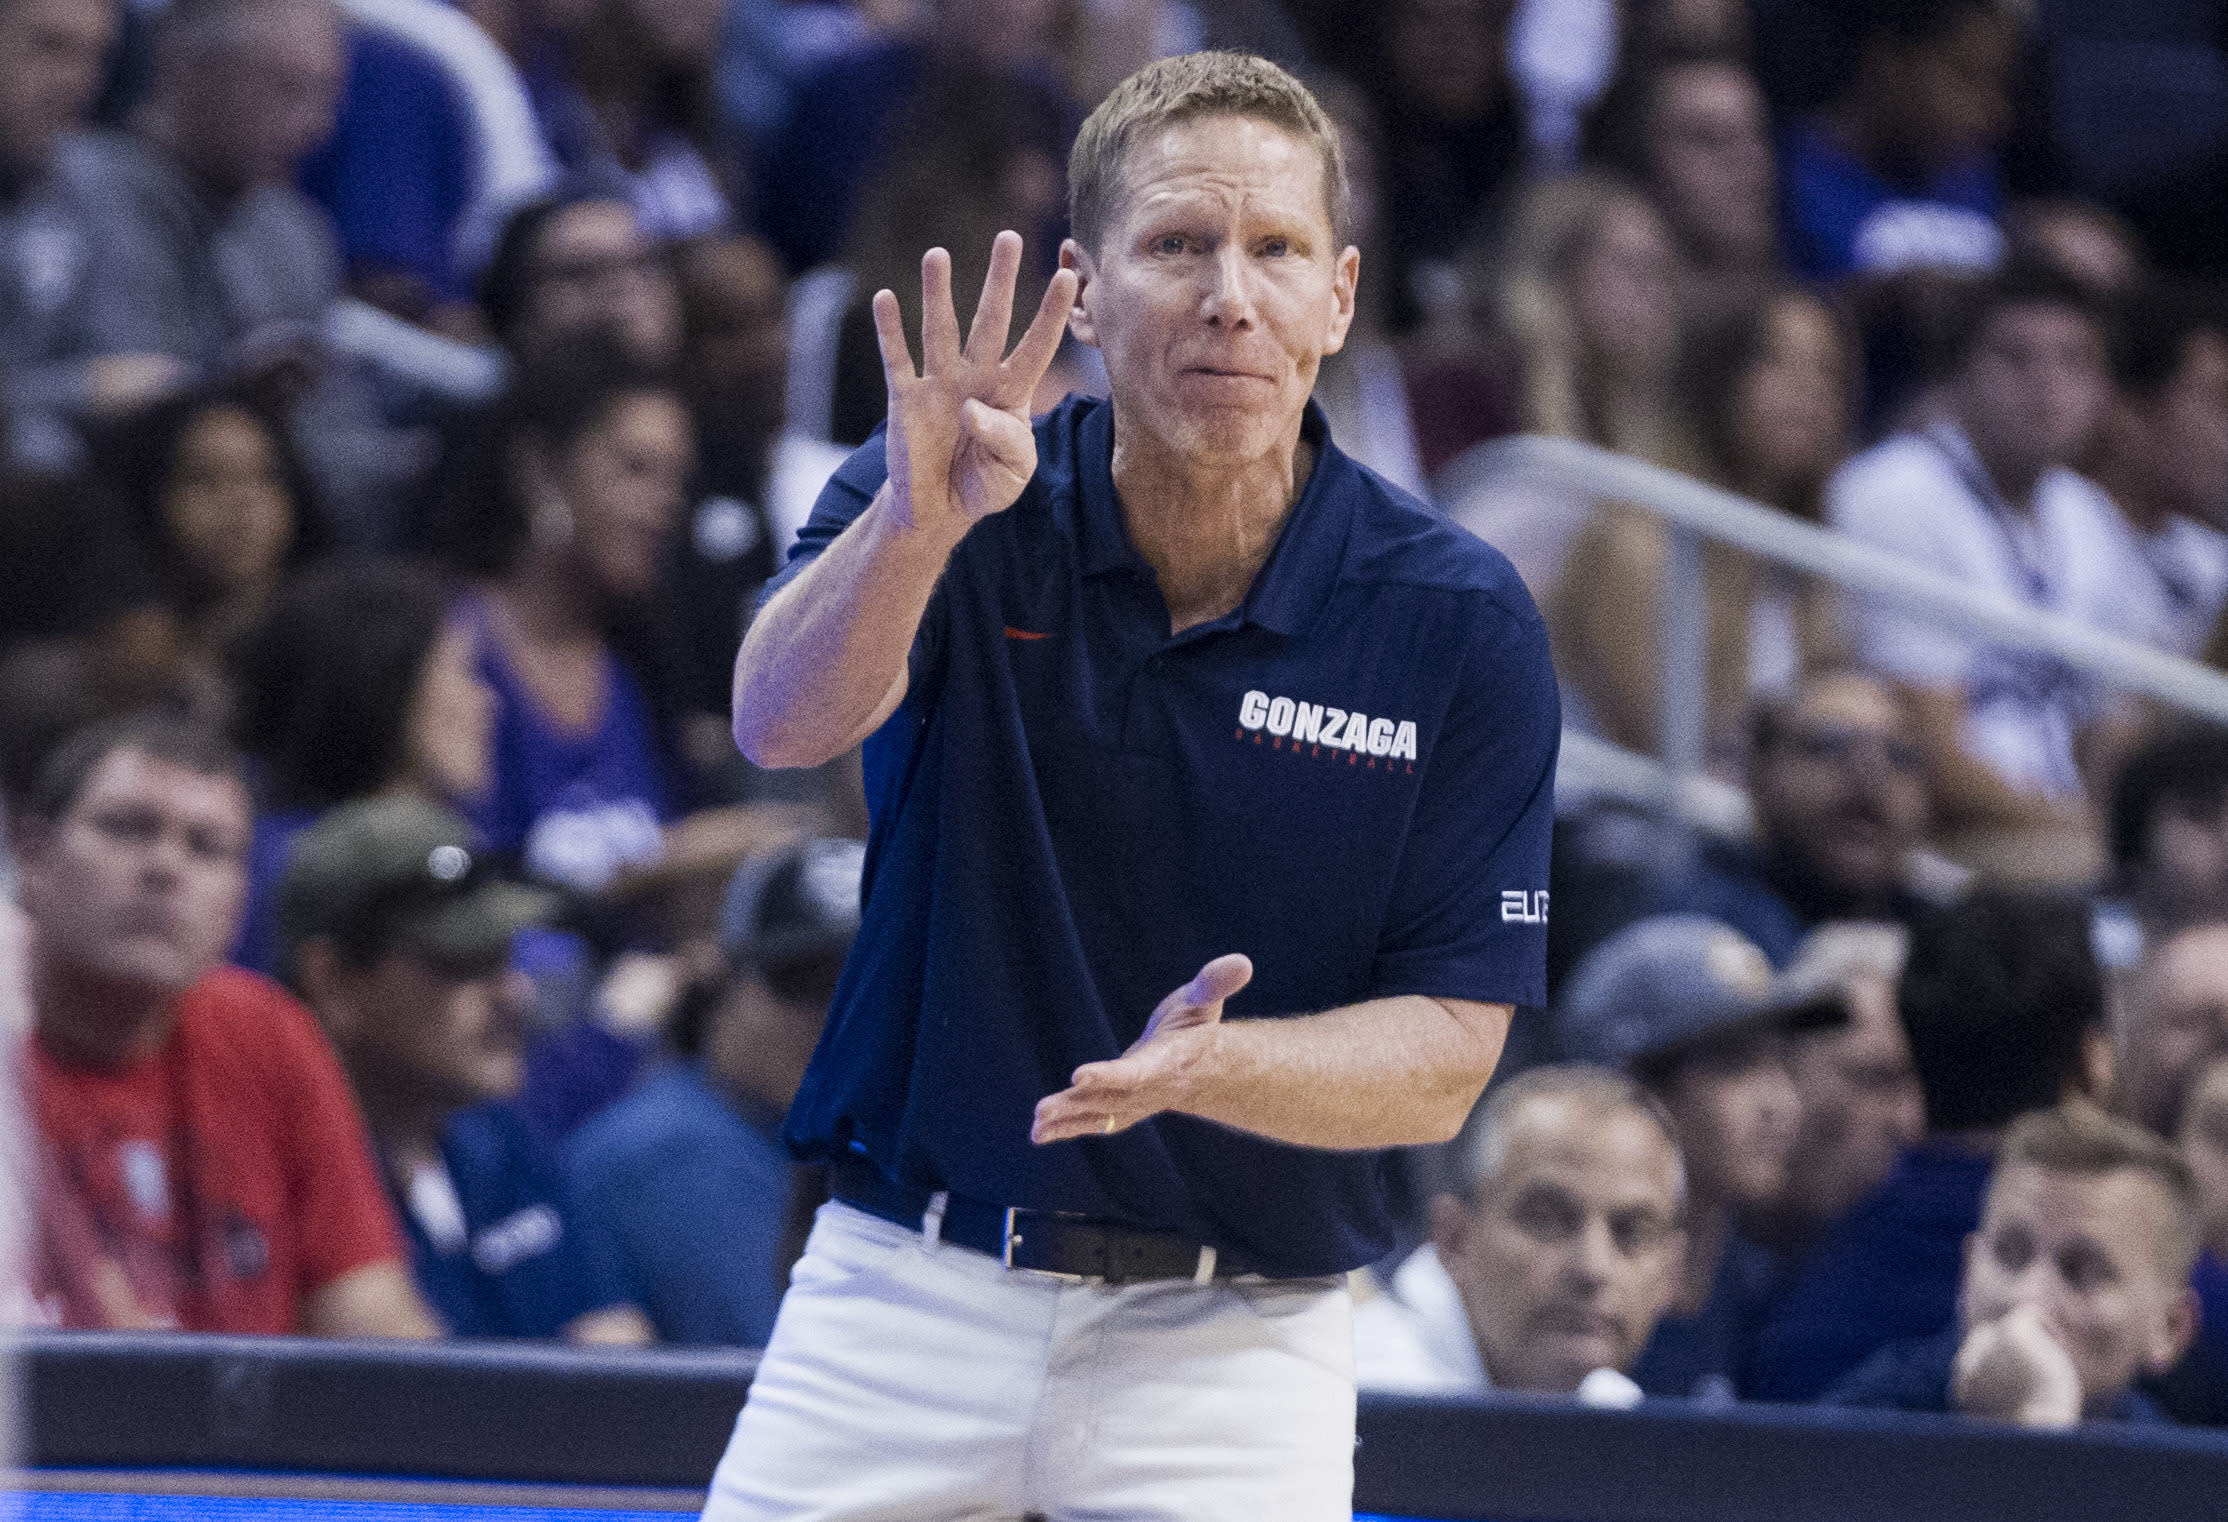 Gonzaga coach Mark Few wants NCAA to 'make decisions' in corruption investigation